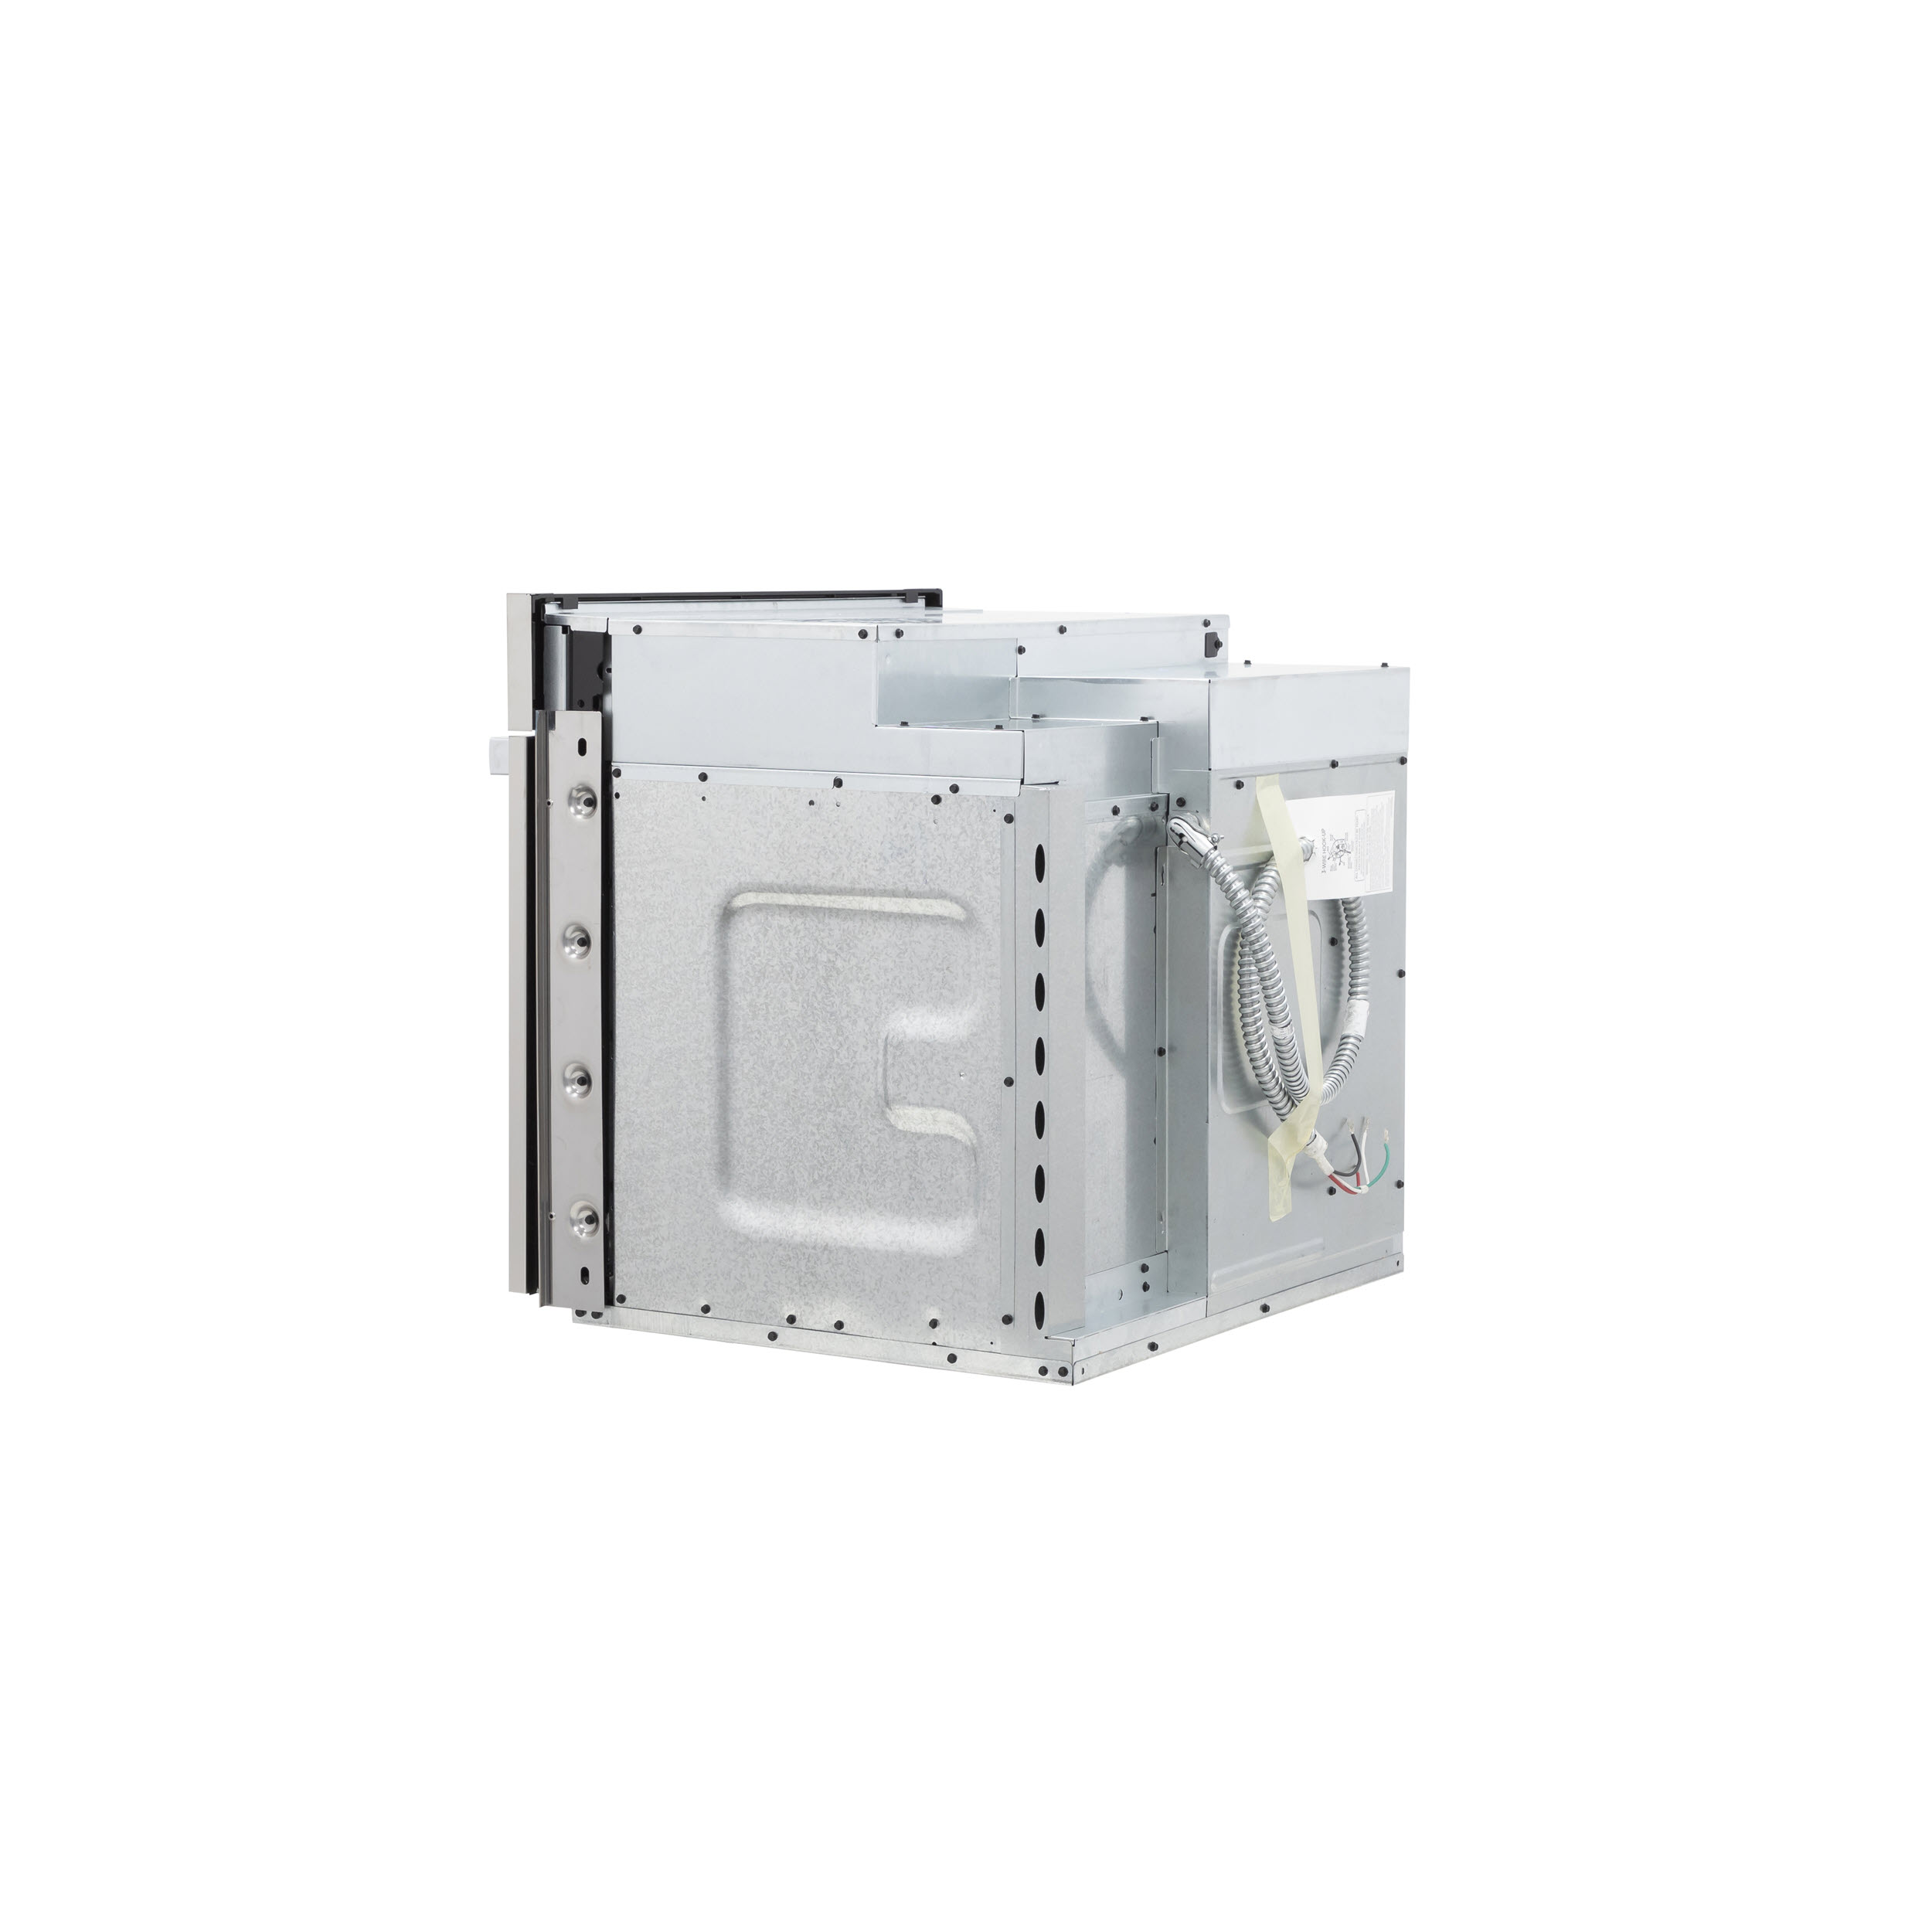 """Model: JTS5000SNSS   GE GE® 30"""" Smart Built-In Self-Clean Convection Single Wall Oven with Never Scrub Racks"""